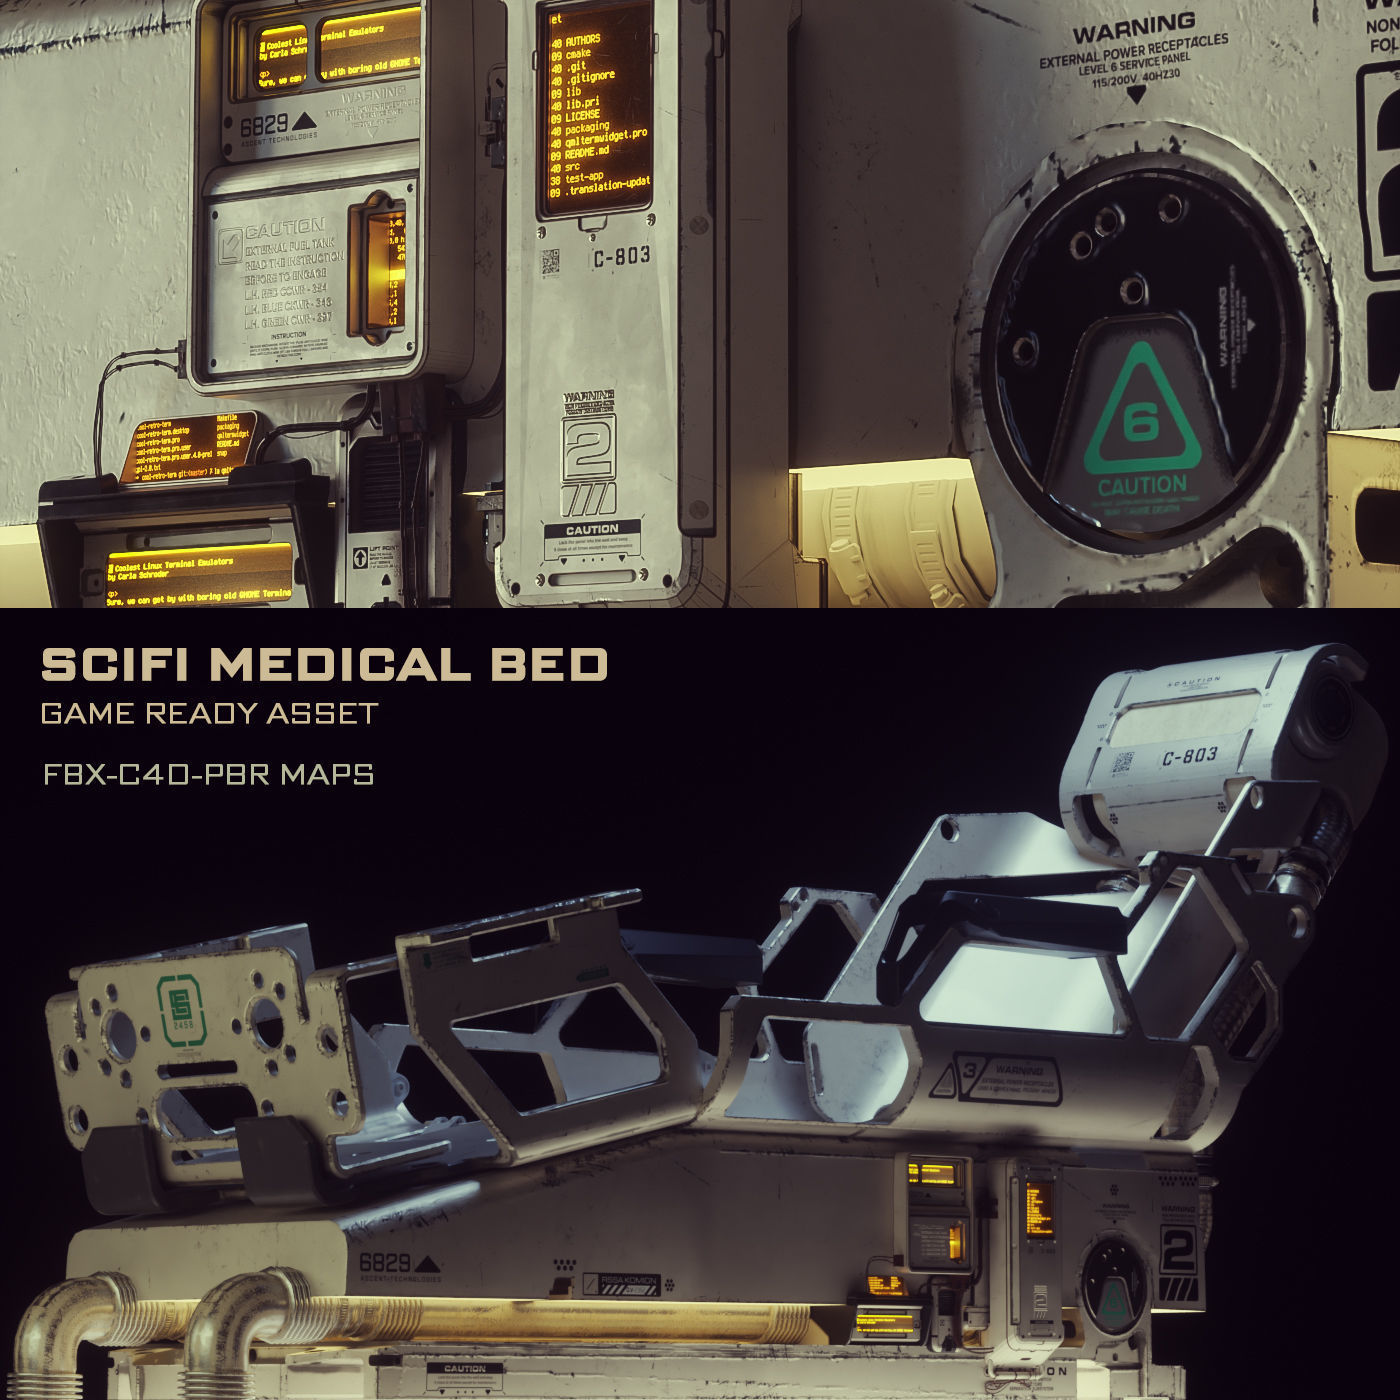 Scifi Medical Bed - Game Ready